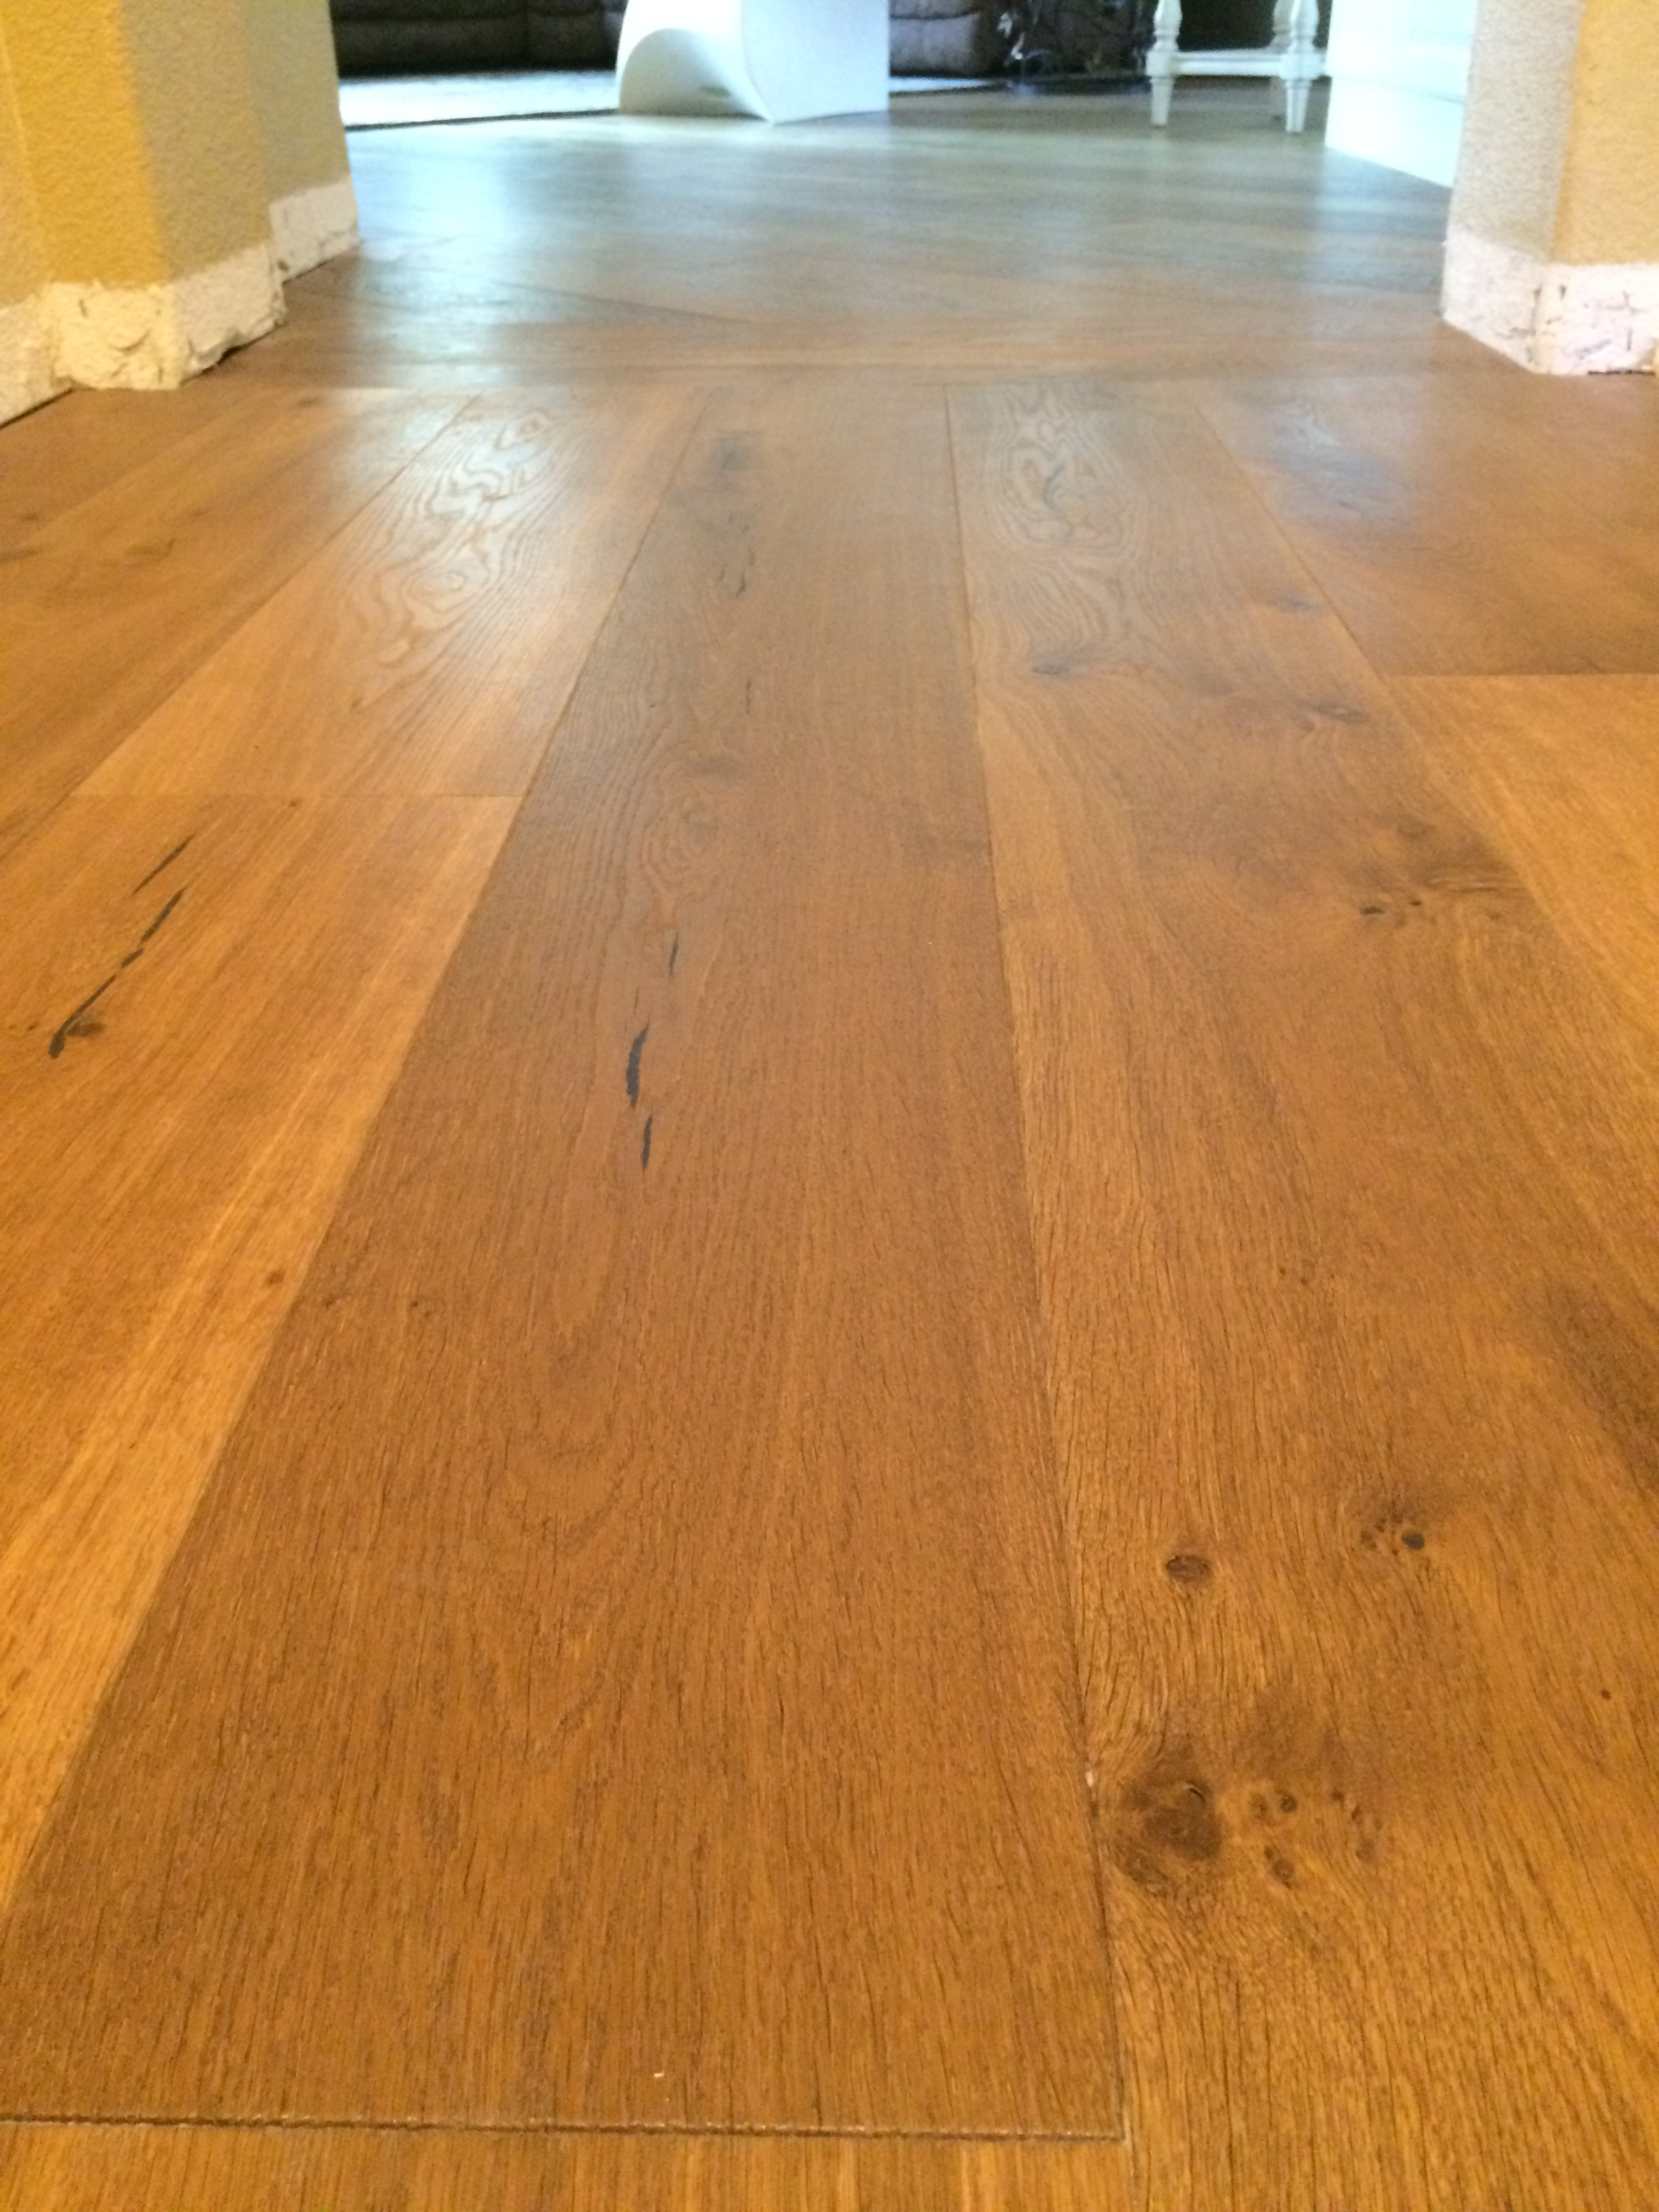 Diablo flooring inc hallmark hardwood blackhawk ca for Hardwood flooring inc